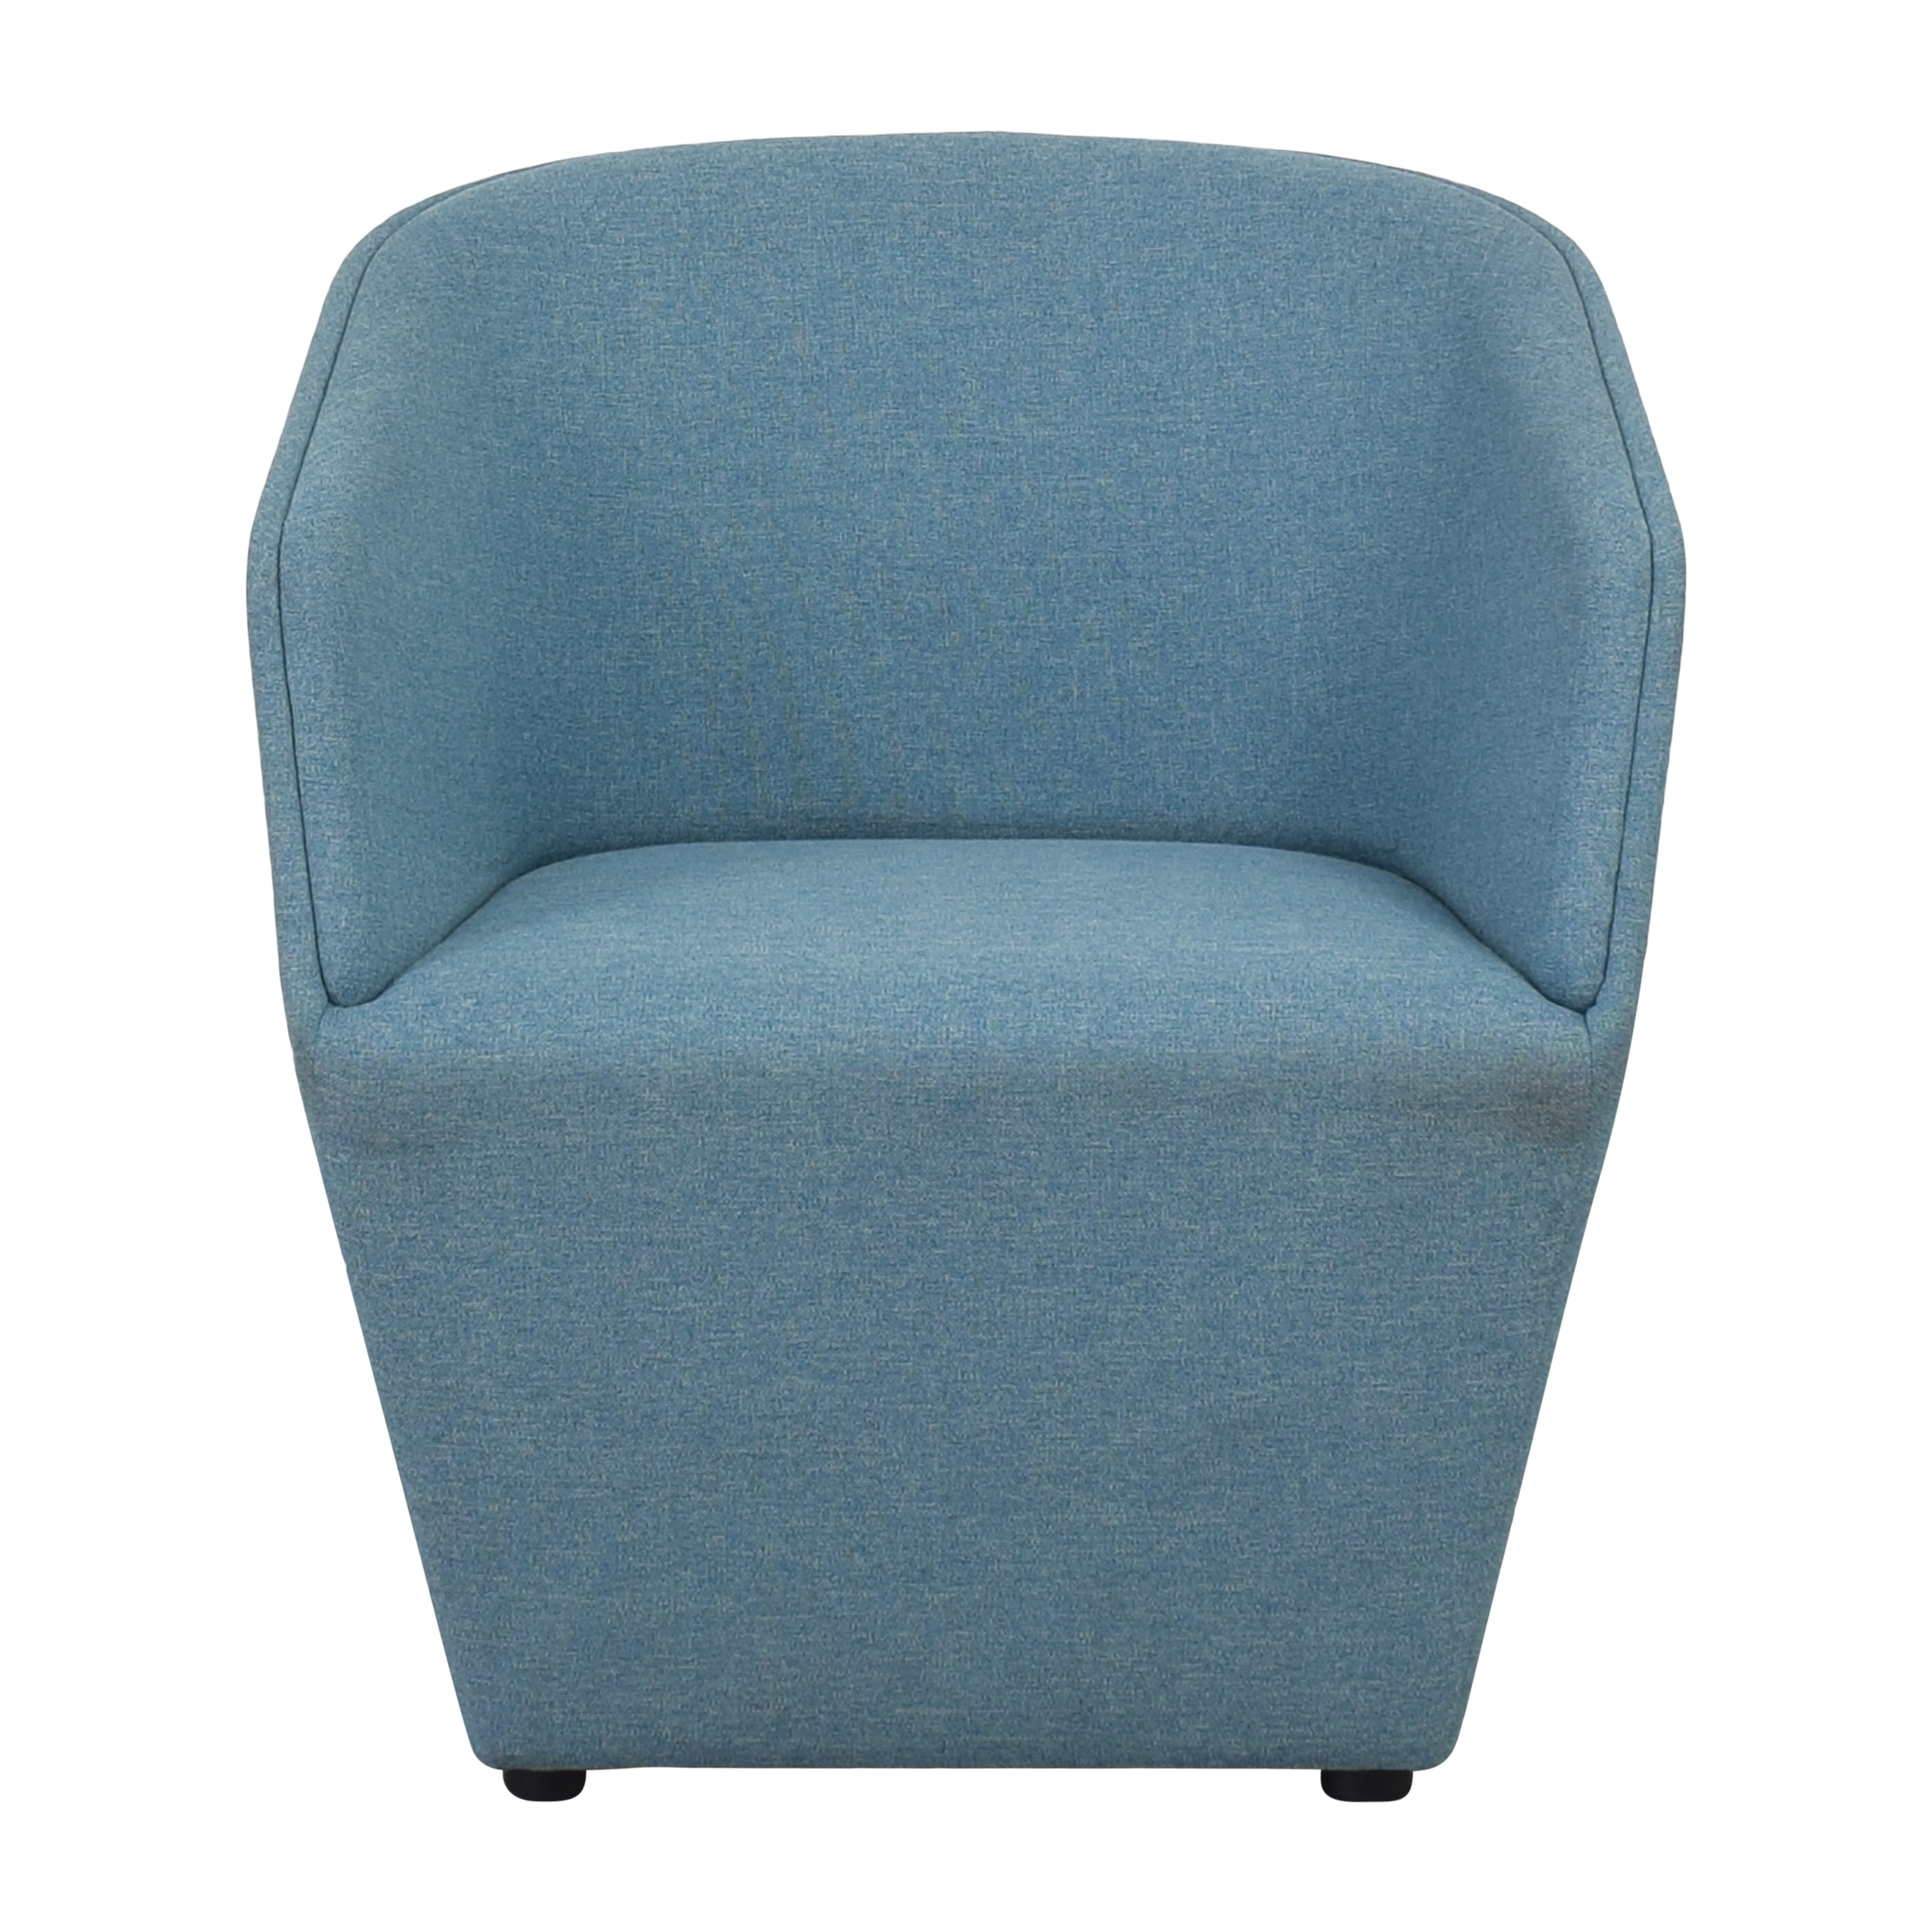 Poppin Poppin Pitch Club Chair used